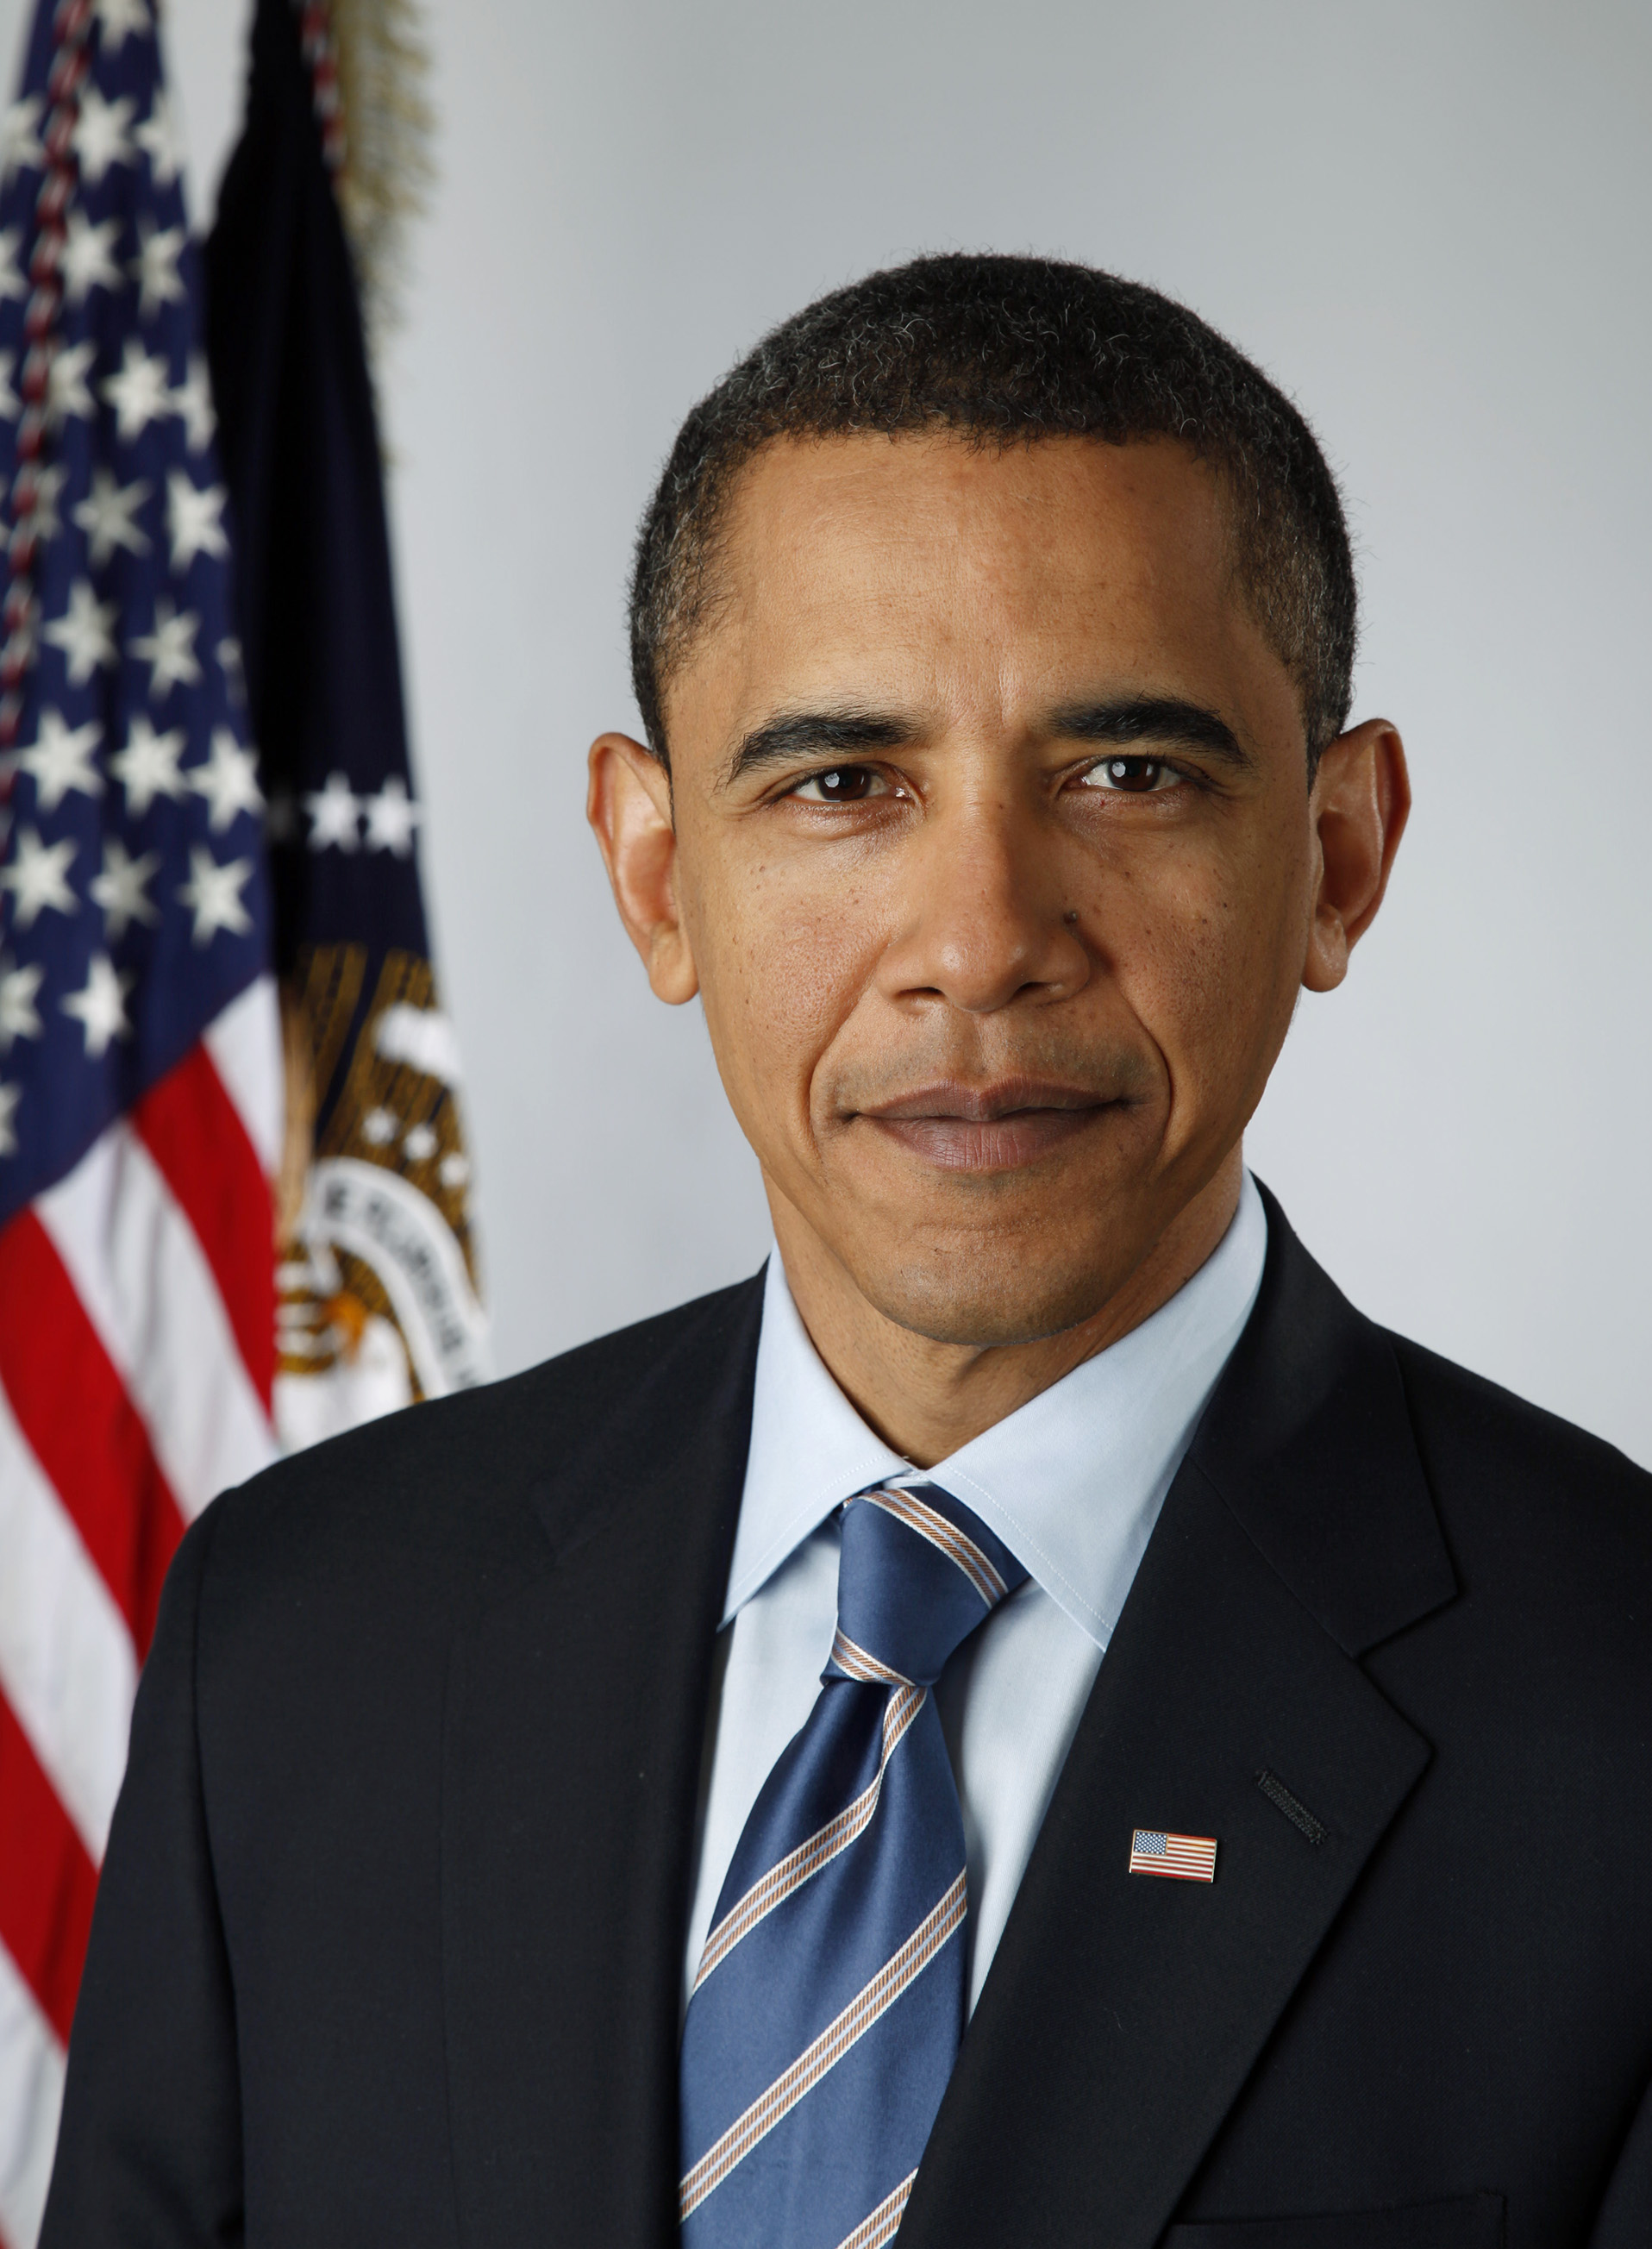 http://upload.wikimedia.org/wikipedia/commons/e/e9/Official_portrait_of_Barack_Obama.jpg